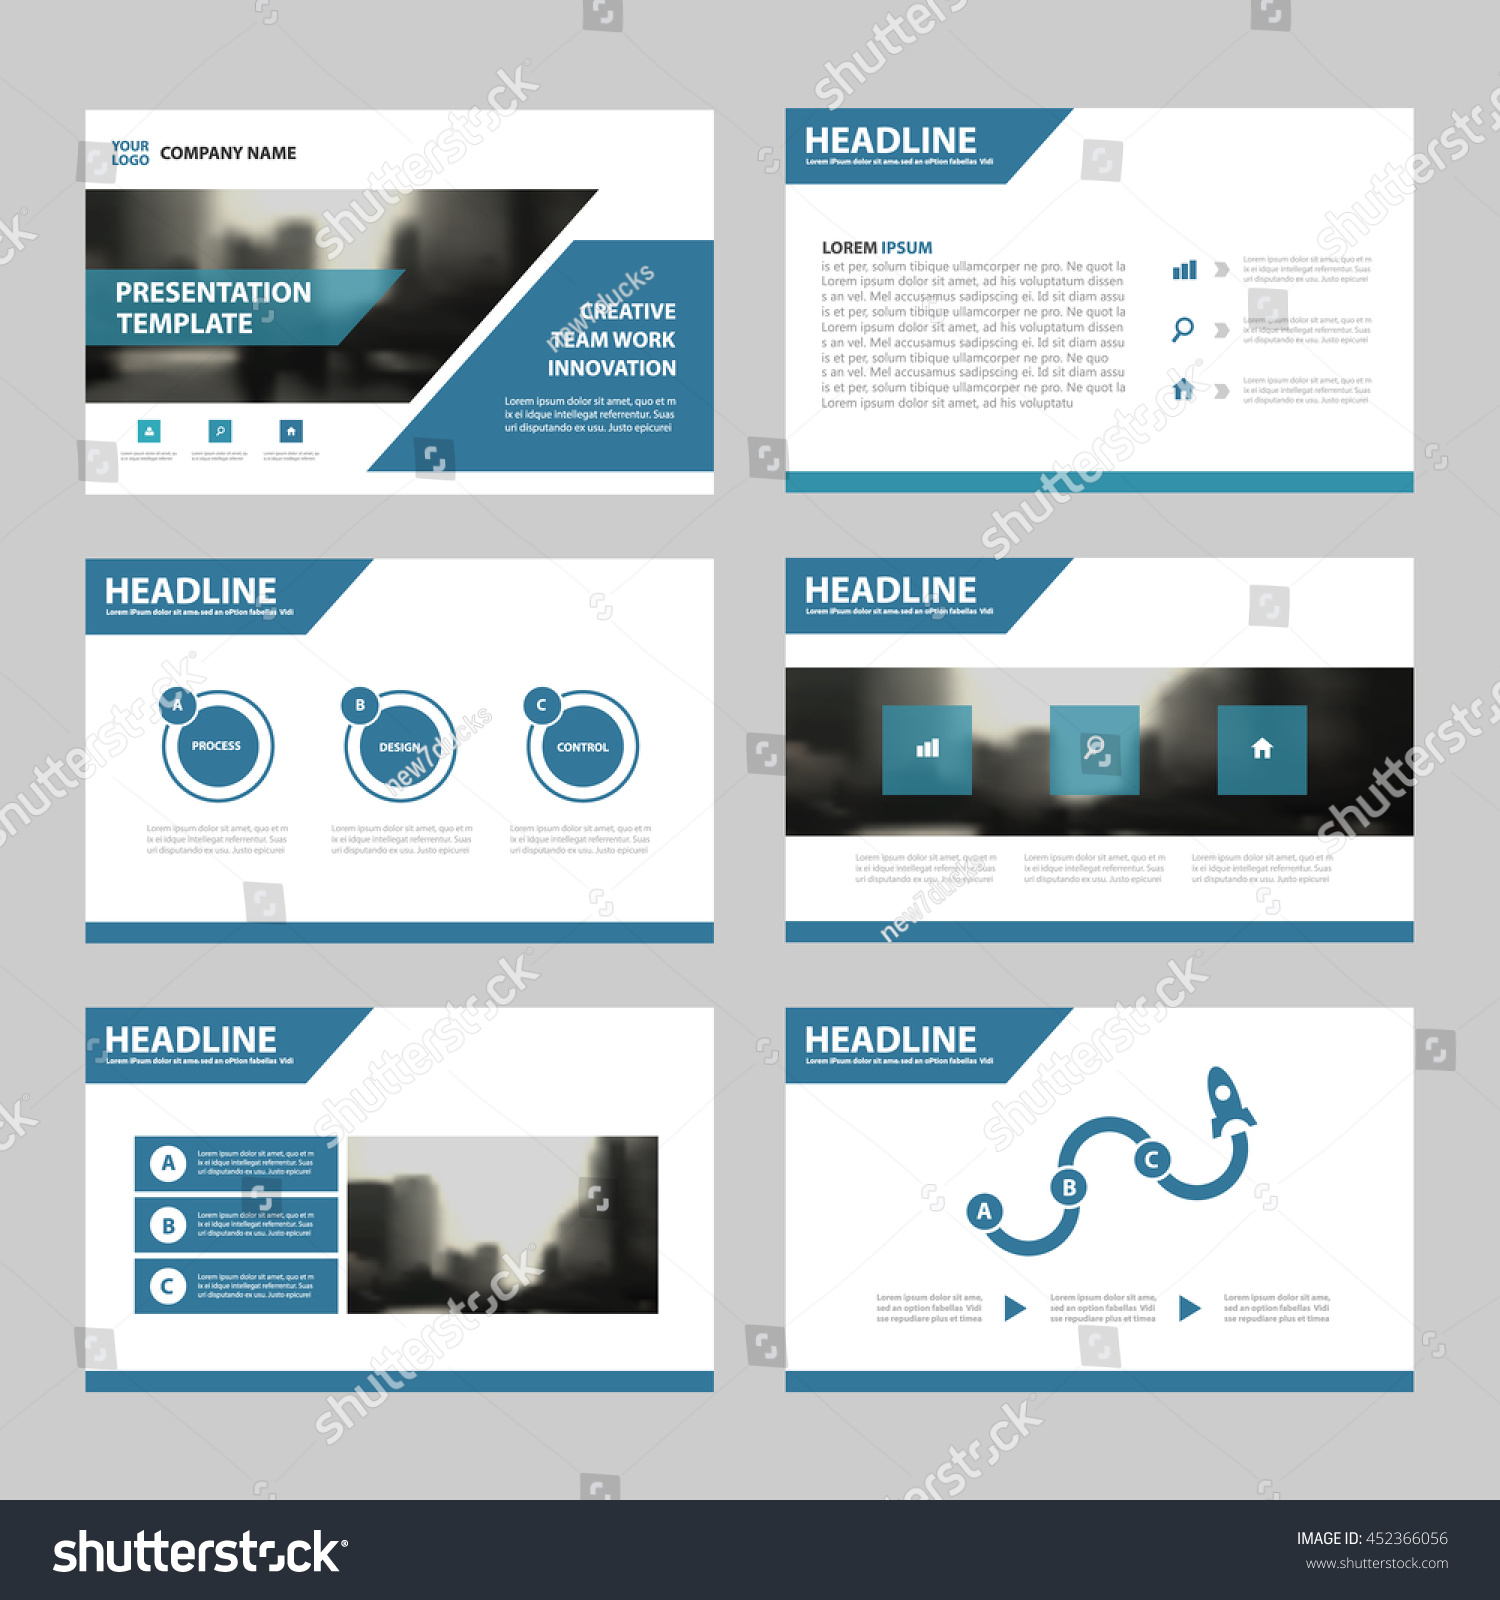 blue abstract presentation templates infographic elements blue abstract presentation templates infographic elements template flat design set for annual report brochure flyer